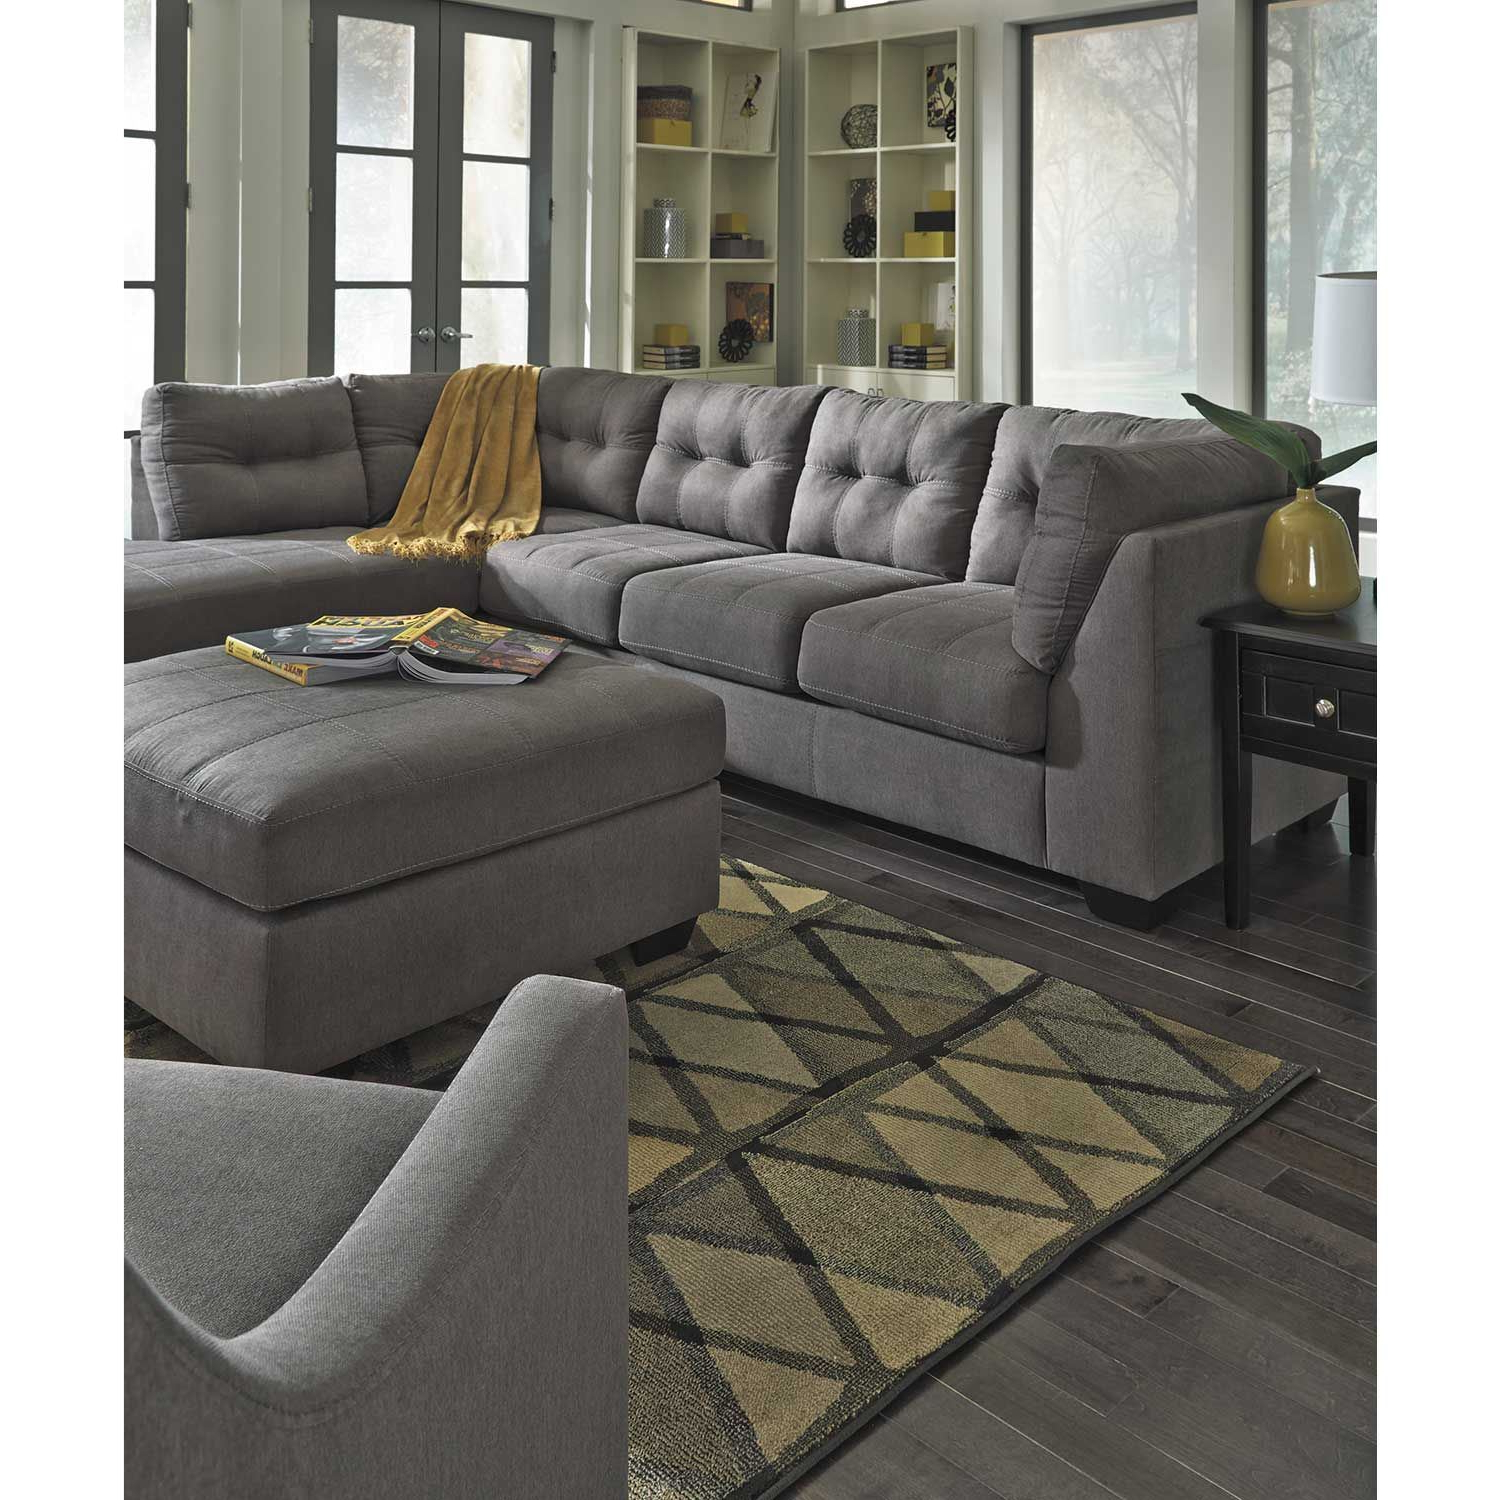 Current Arrowmask 2 Piece Sectionals With Laf Chaise Inside Maier Charcoal 2 Piece Sectional With Laf Chaise (View 17 of 20)